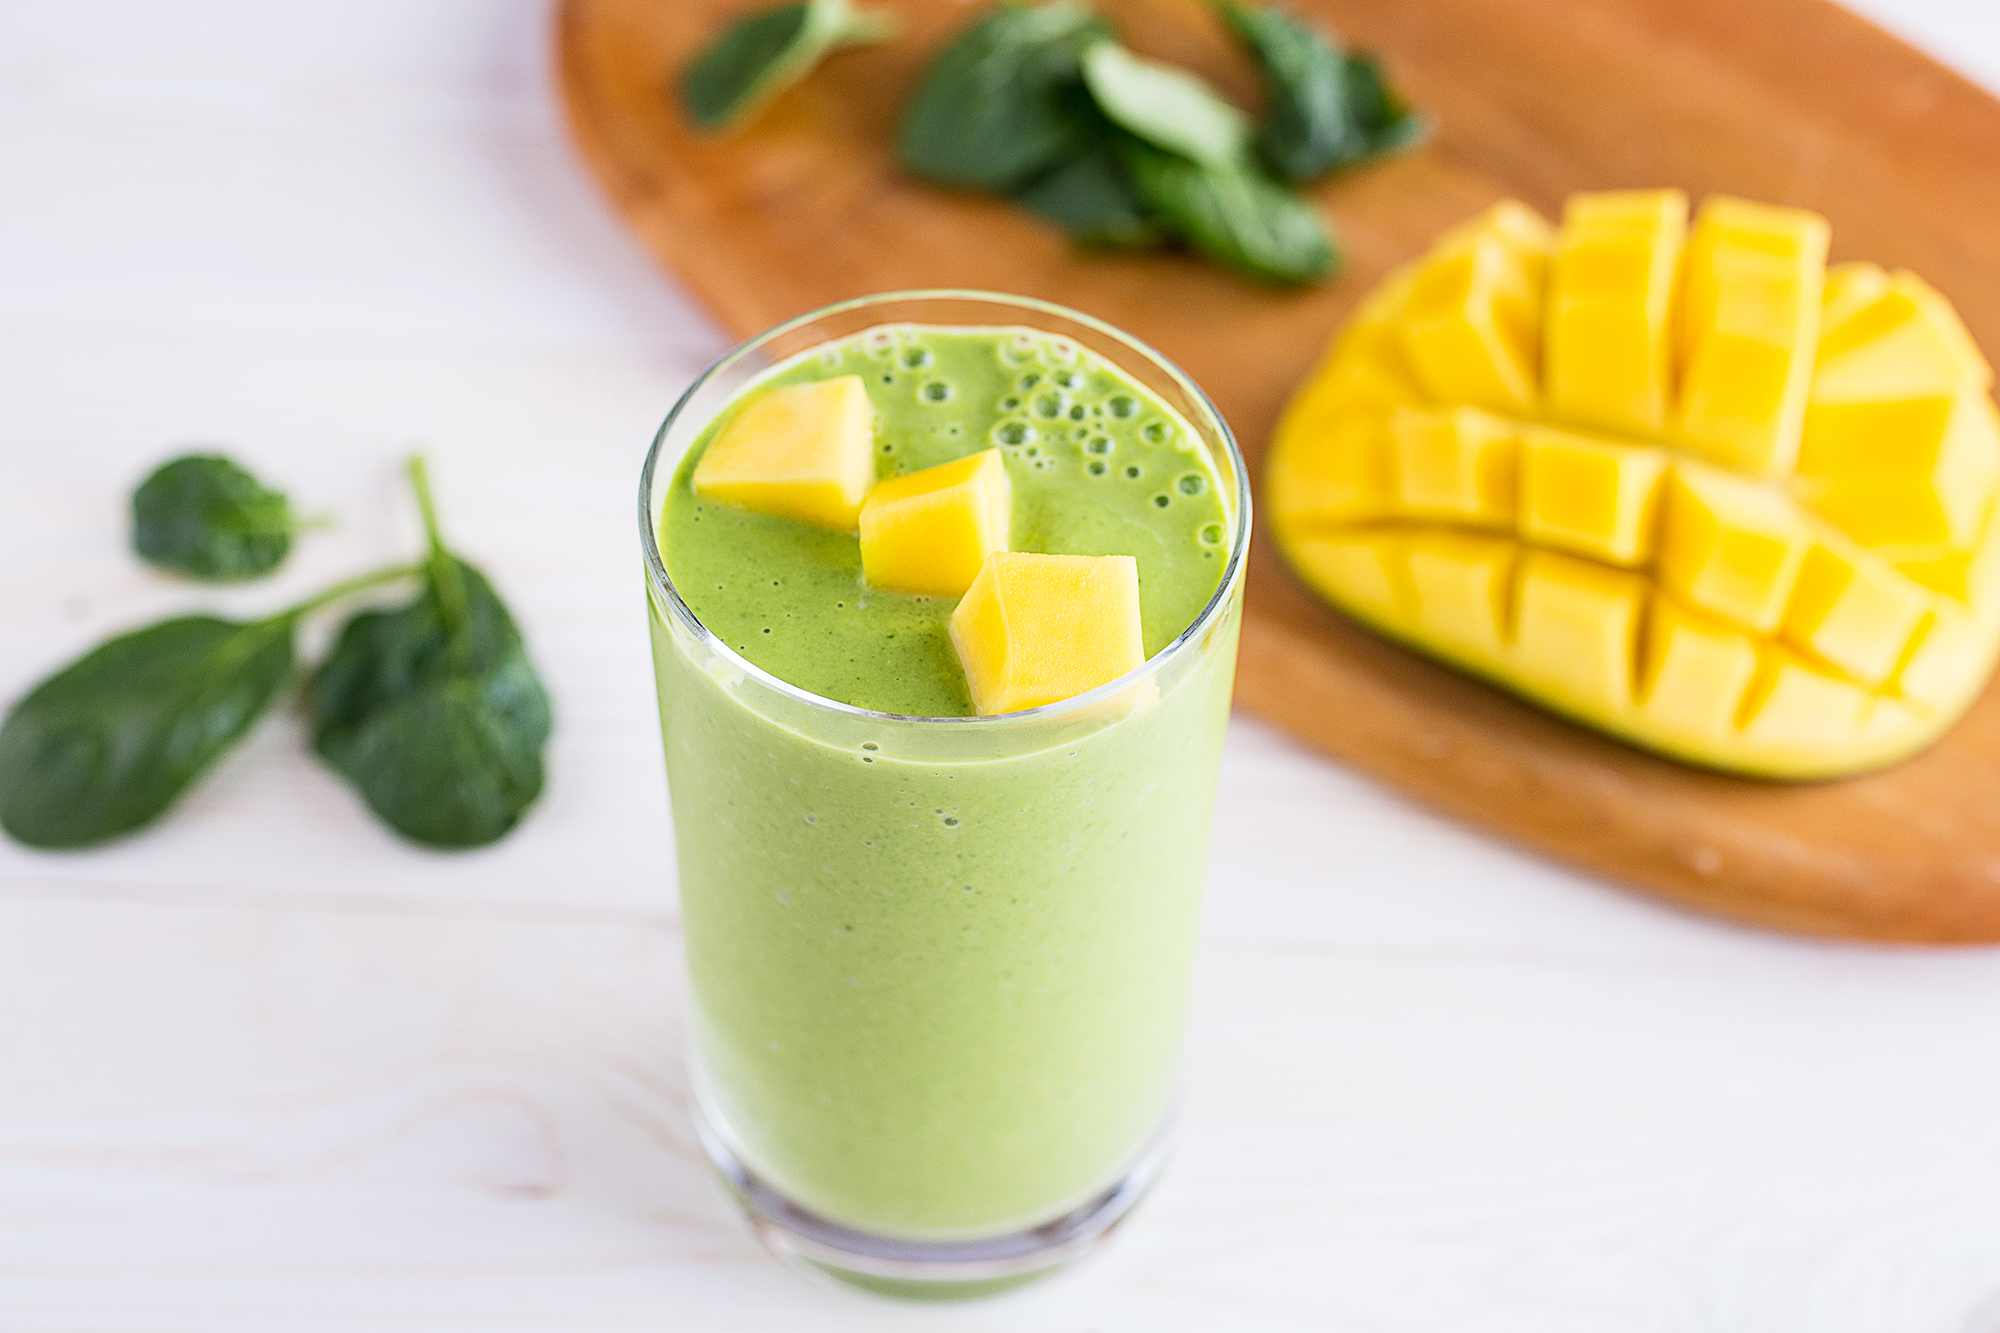 Mango and Spinach Smoothie